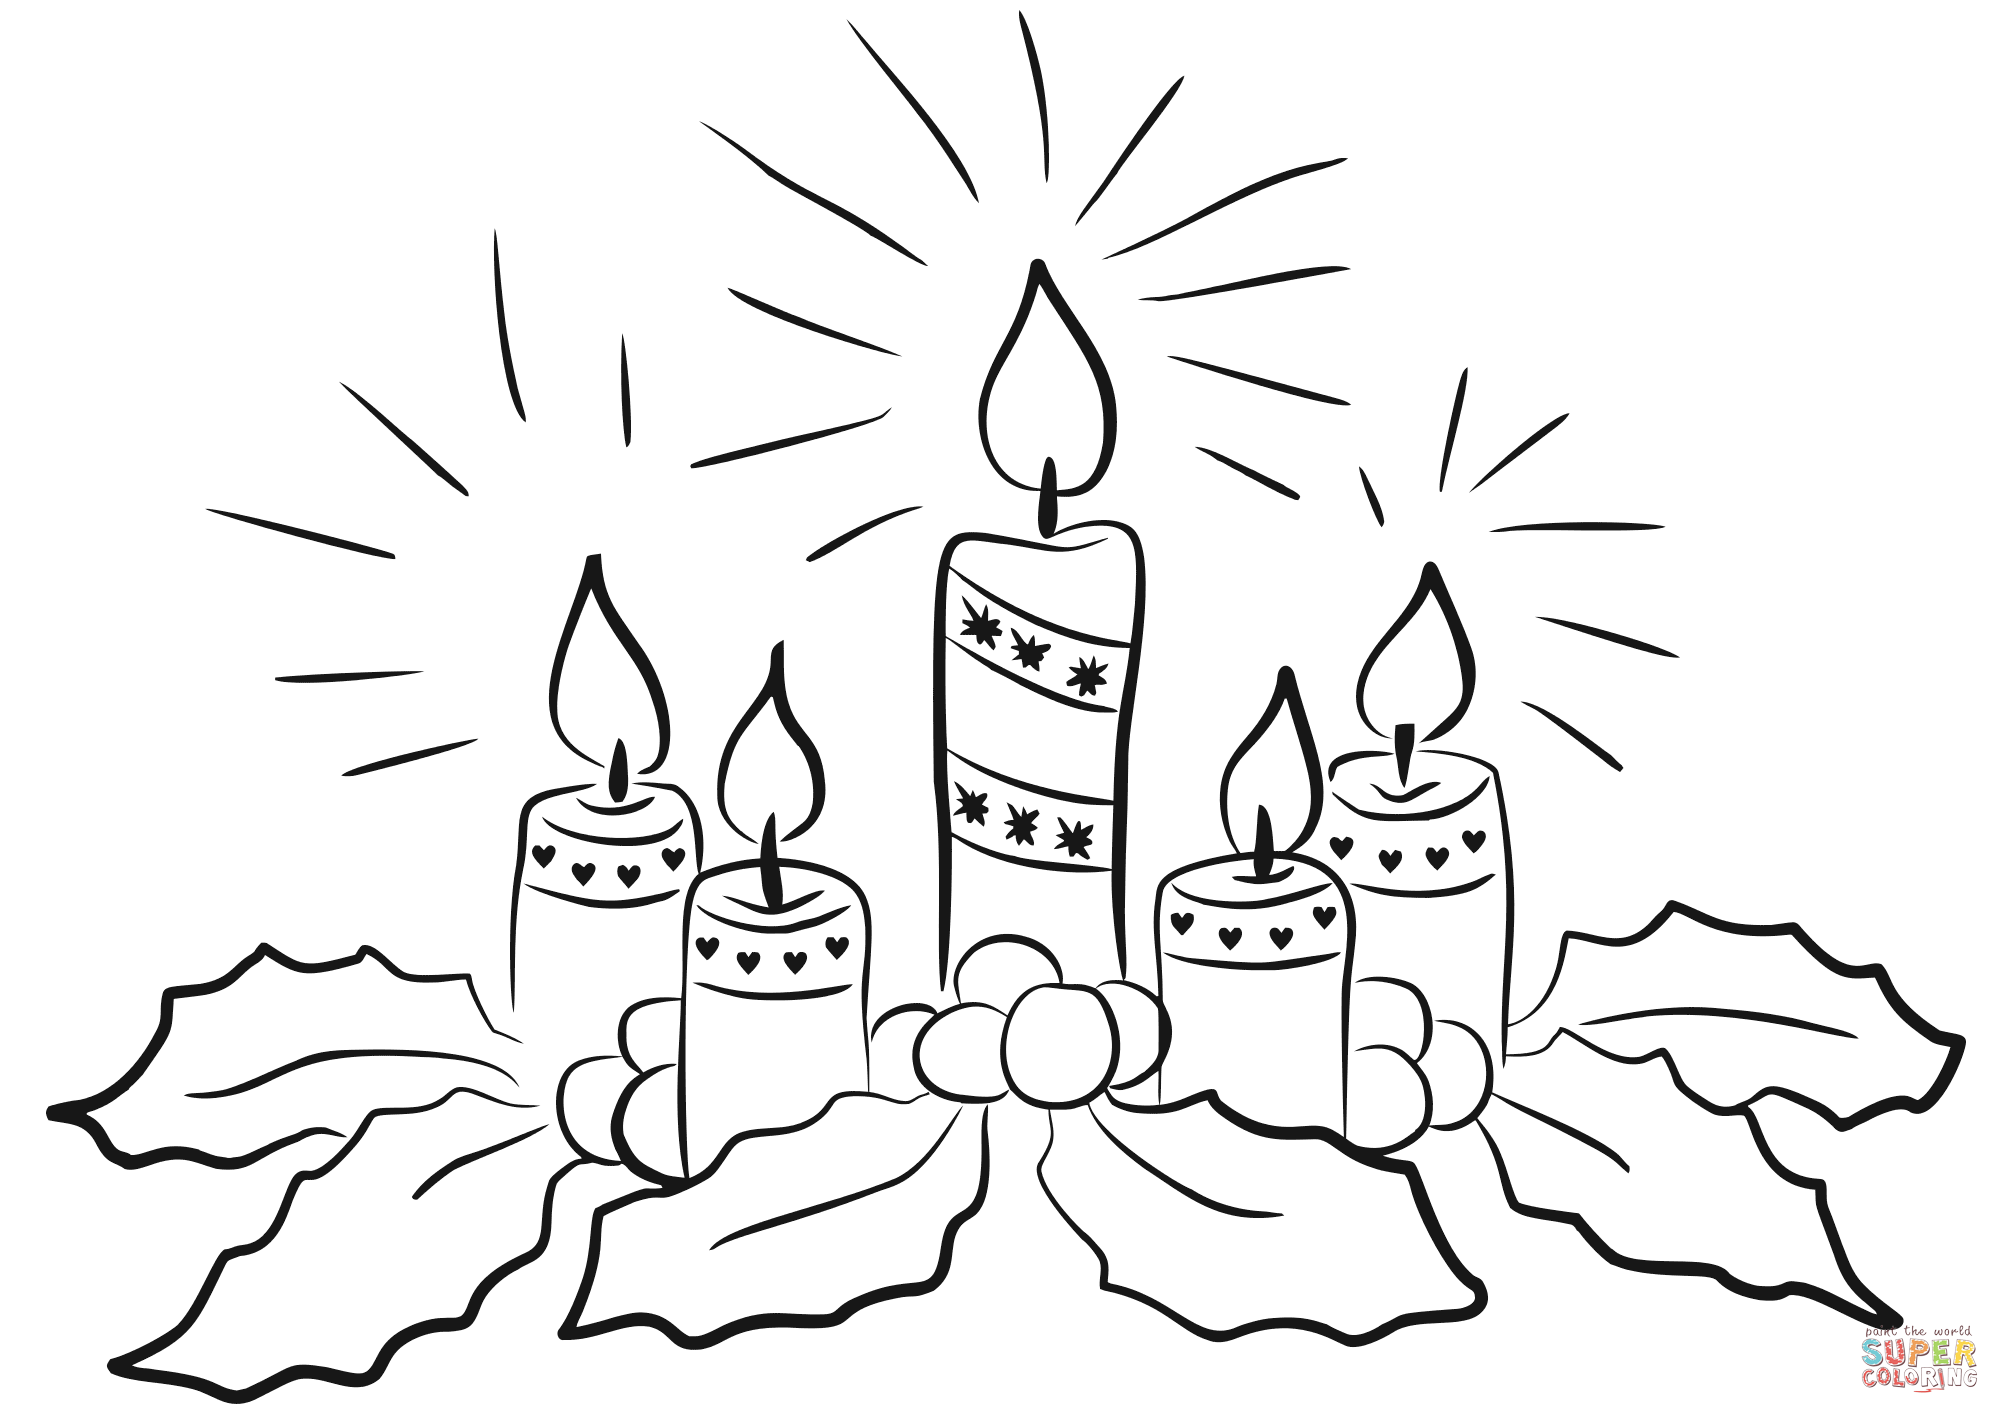 Black And White Advent Wreath Png & Free Black And White Advent.